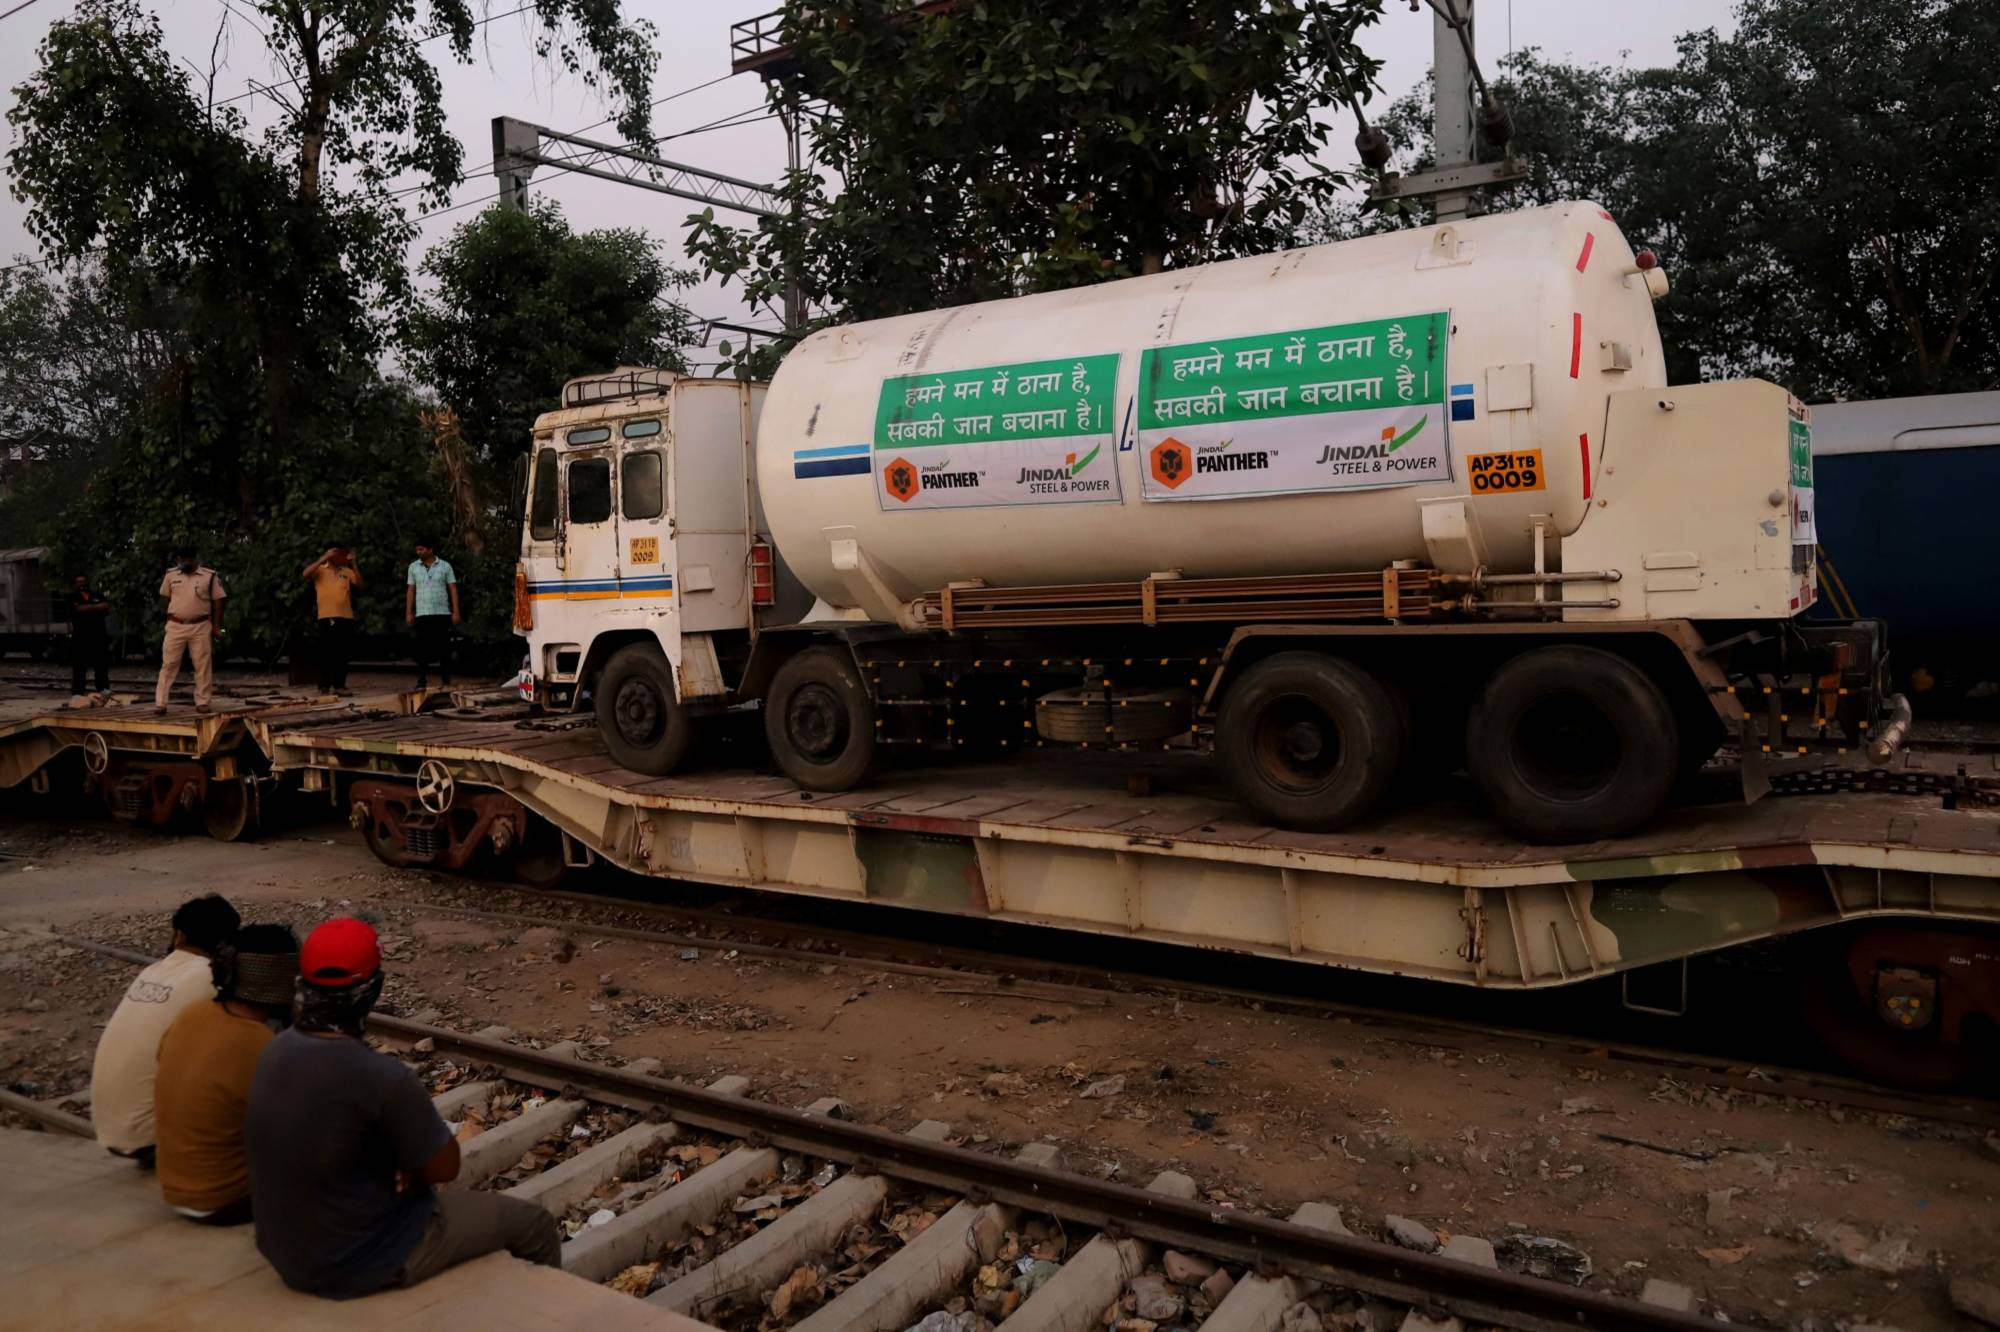 A medical oxygen tanker is delivered via the Oxygen Express train at Delhi Cantt railway station on Tuesday.   BLOOMBERG